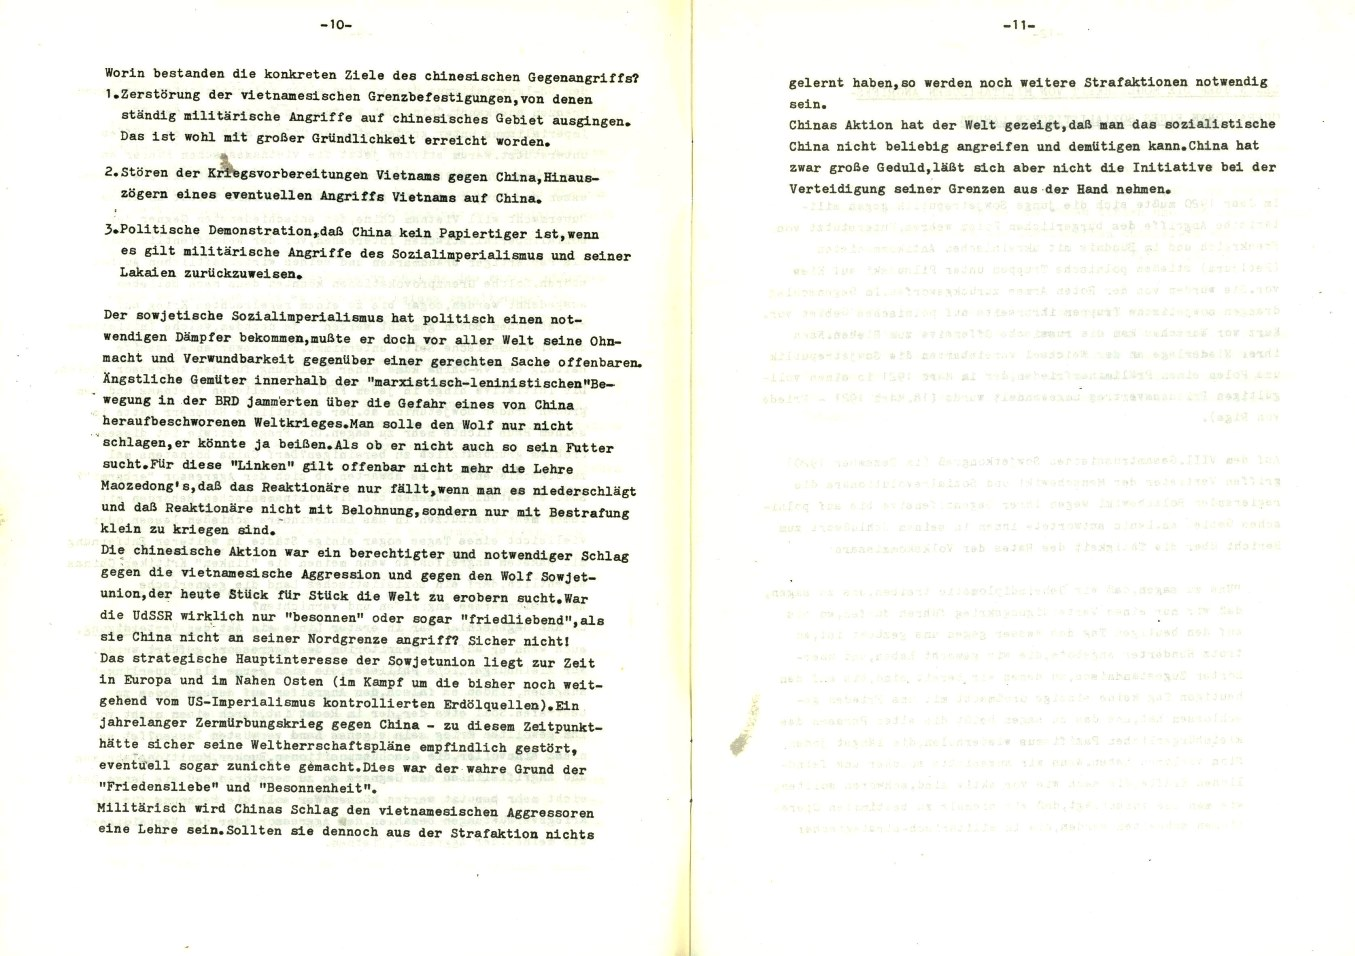 Muenchen_Kampf_dem_Revisionismus_1979_10_06